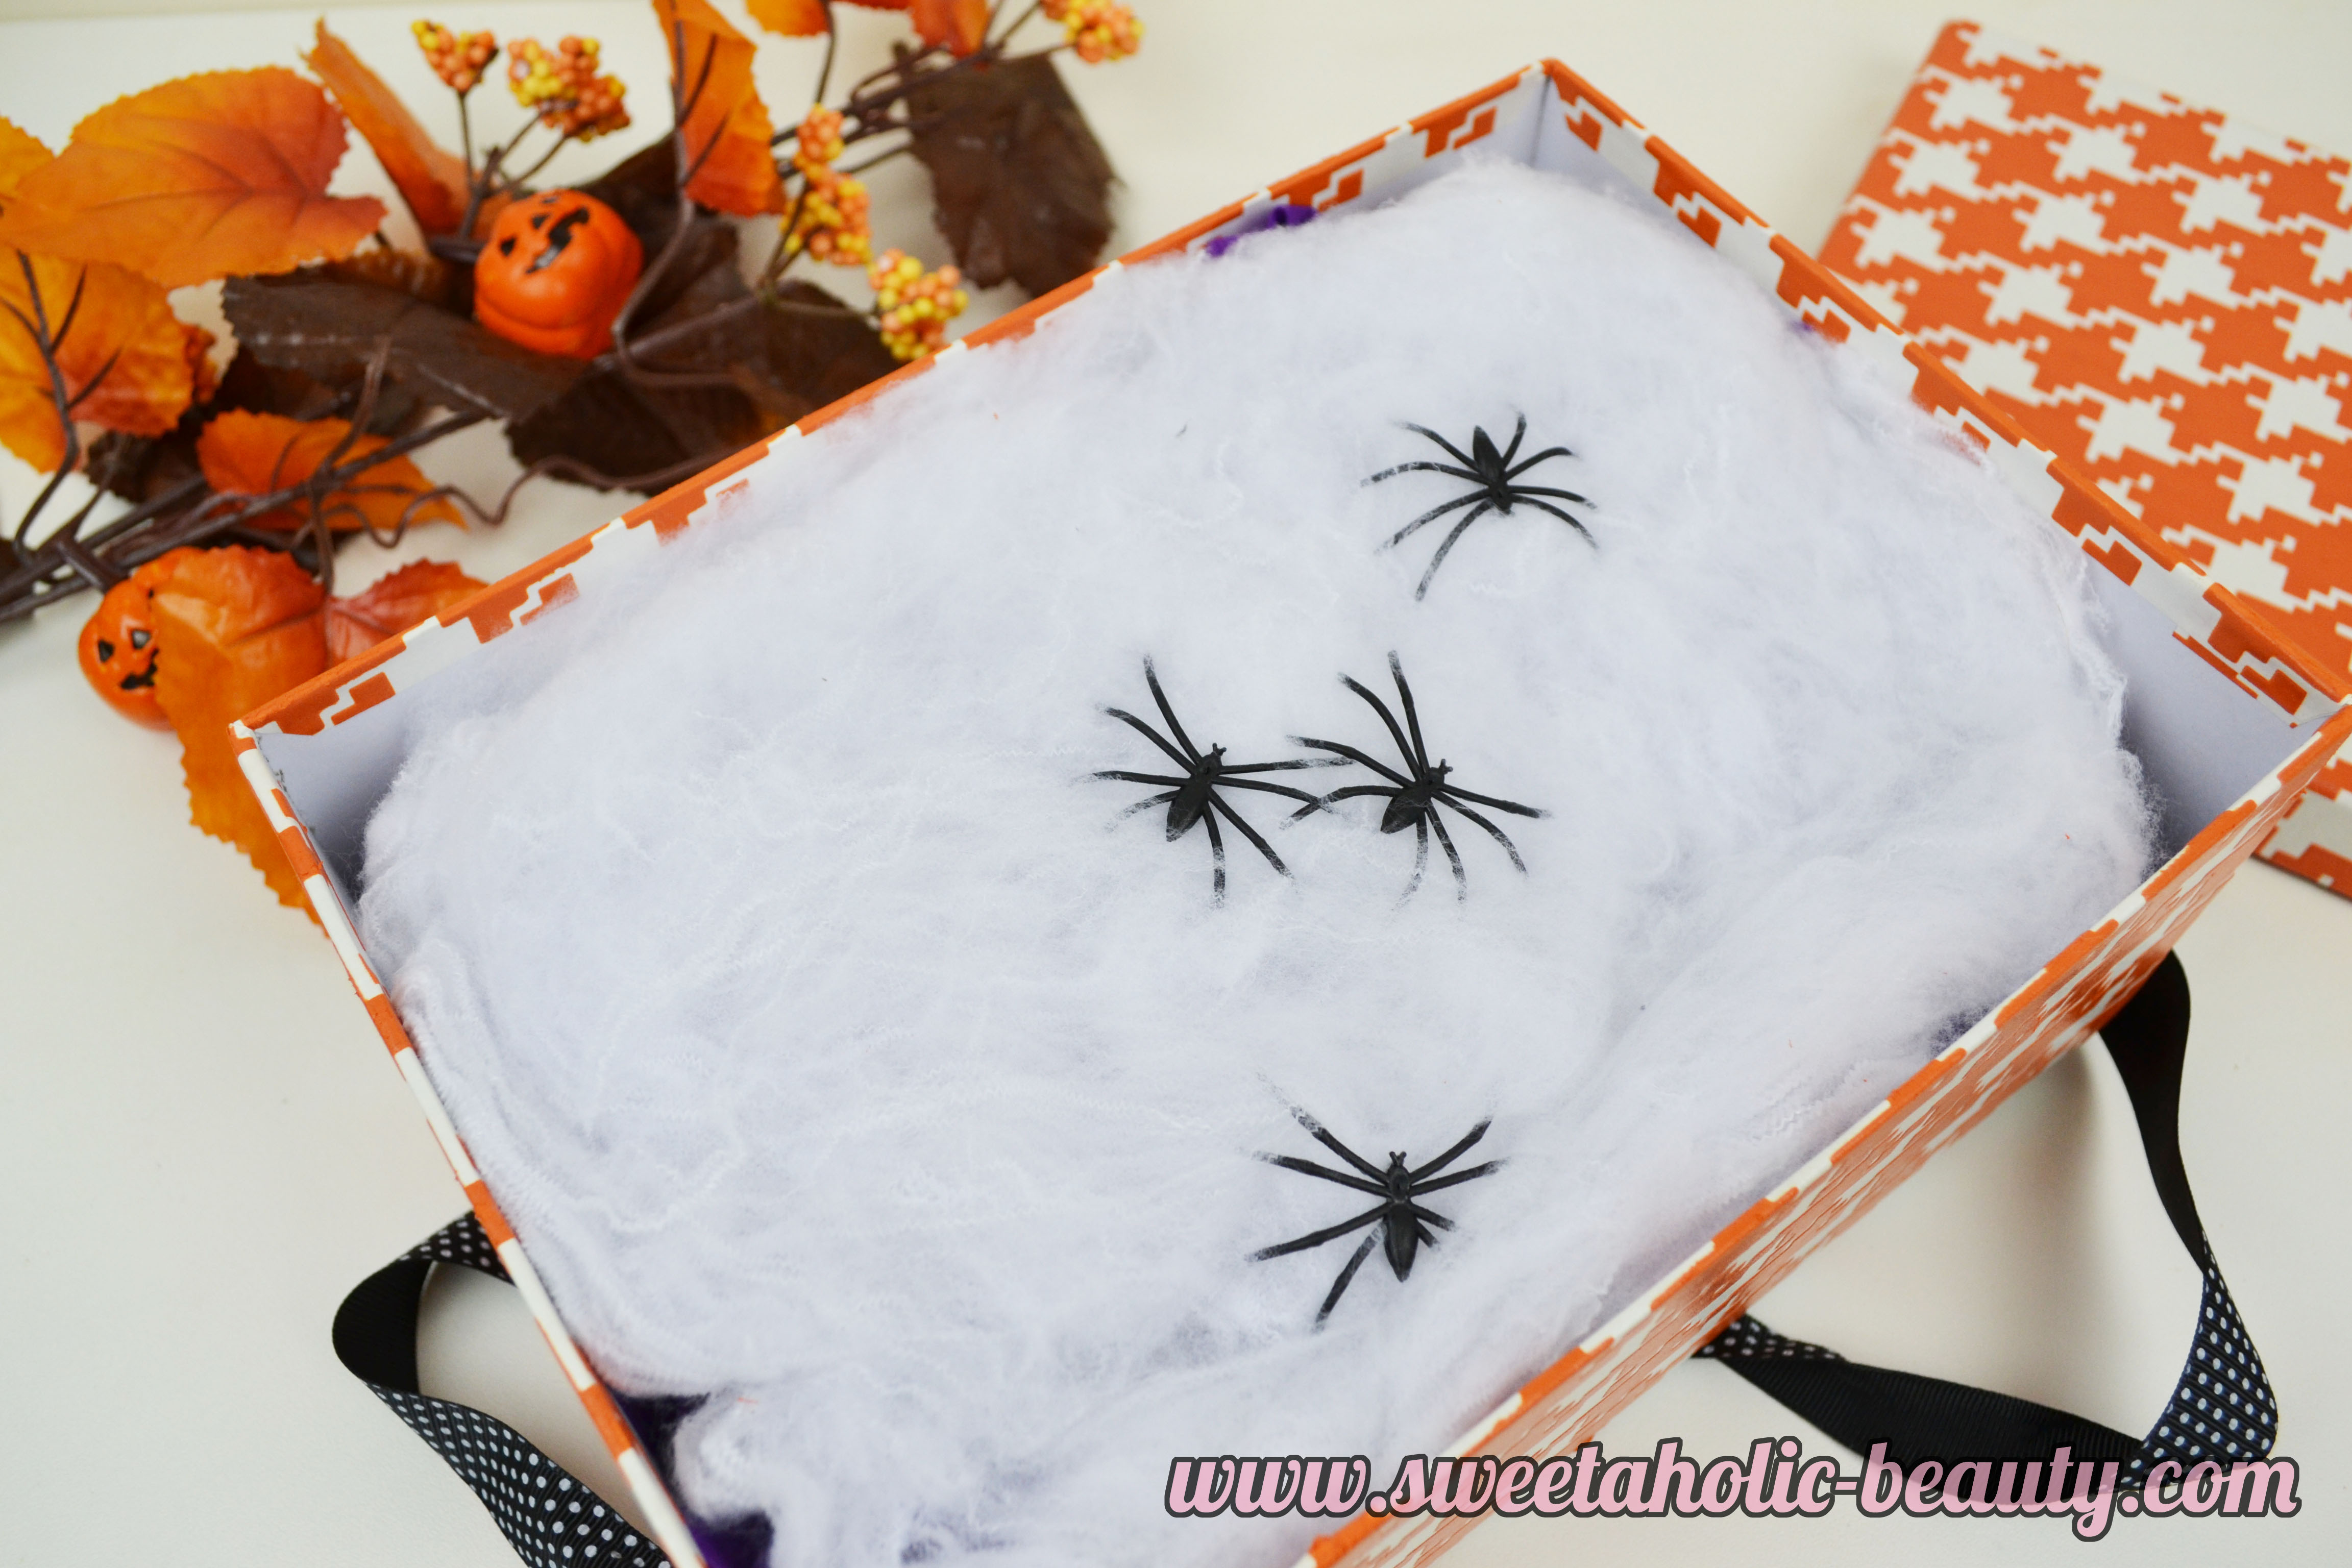 Halloween Swap with Jojo's Beauty - Sweetaholic Beauty